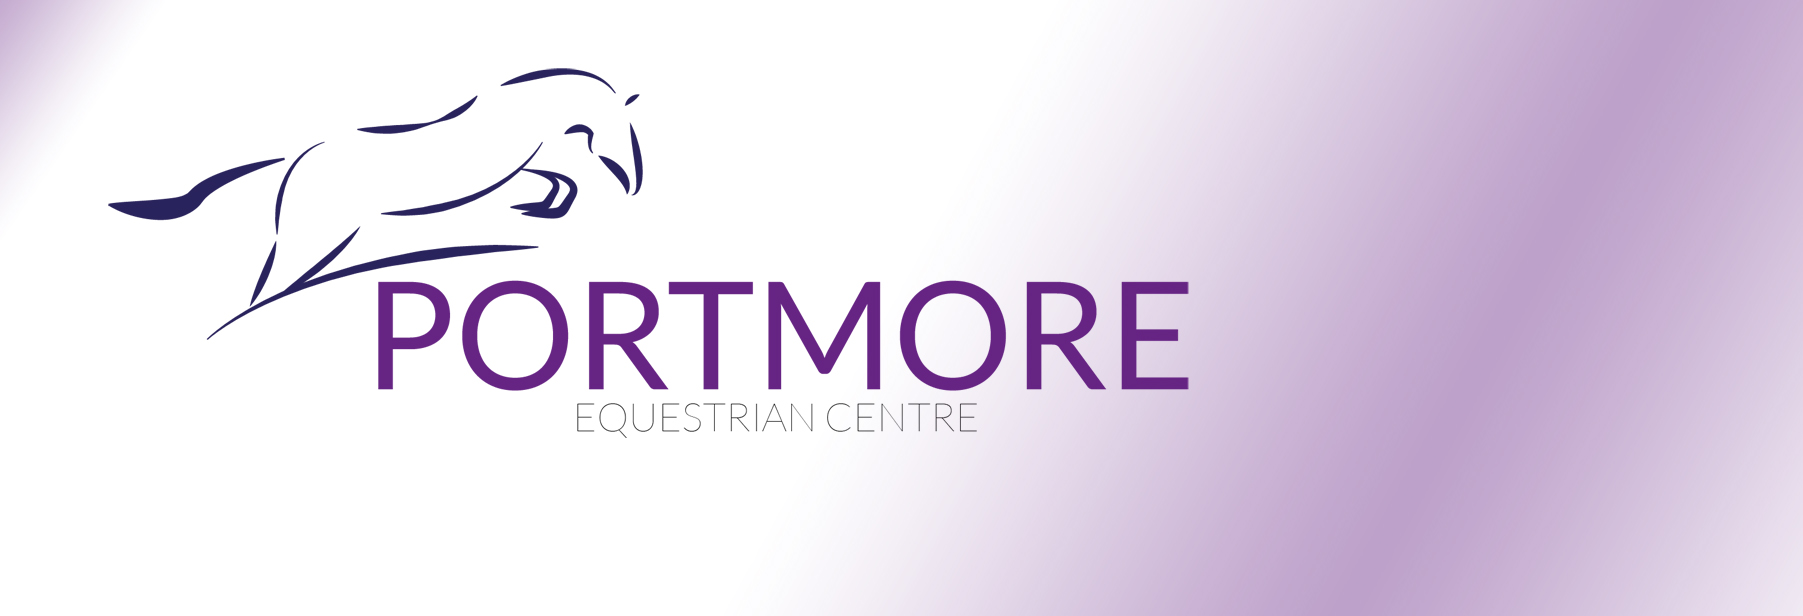 portmore-logo-purple-slider